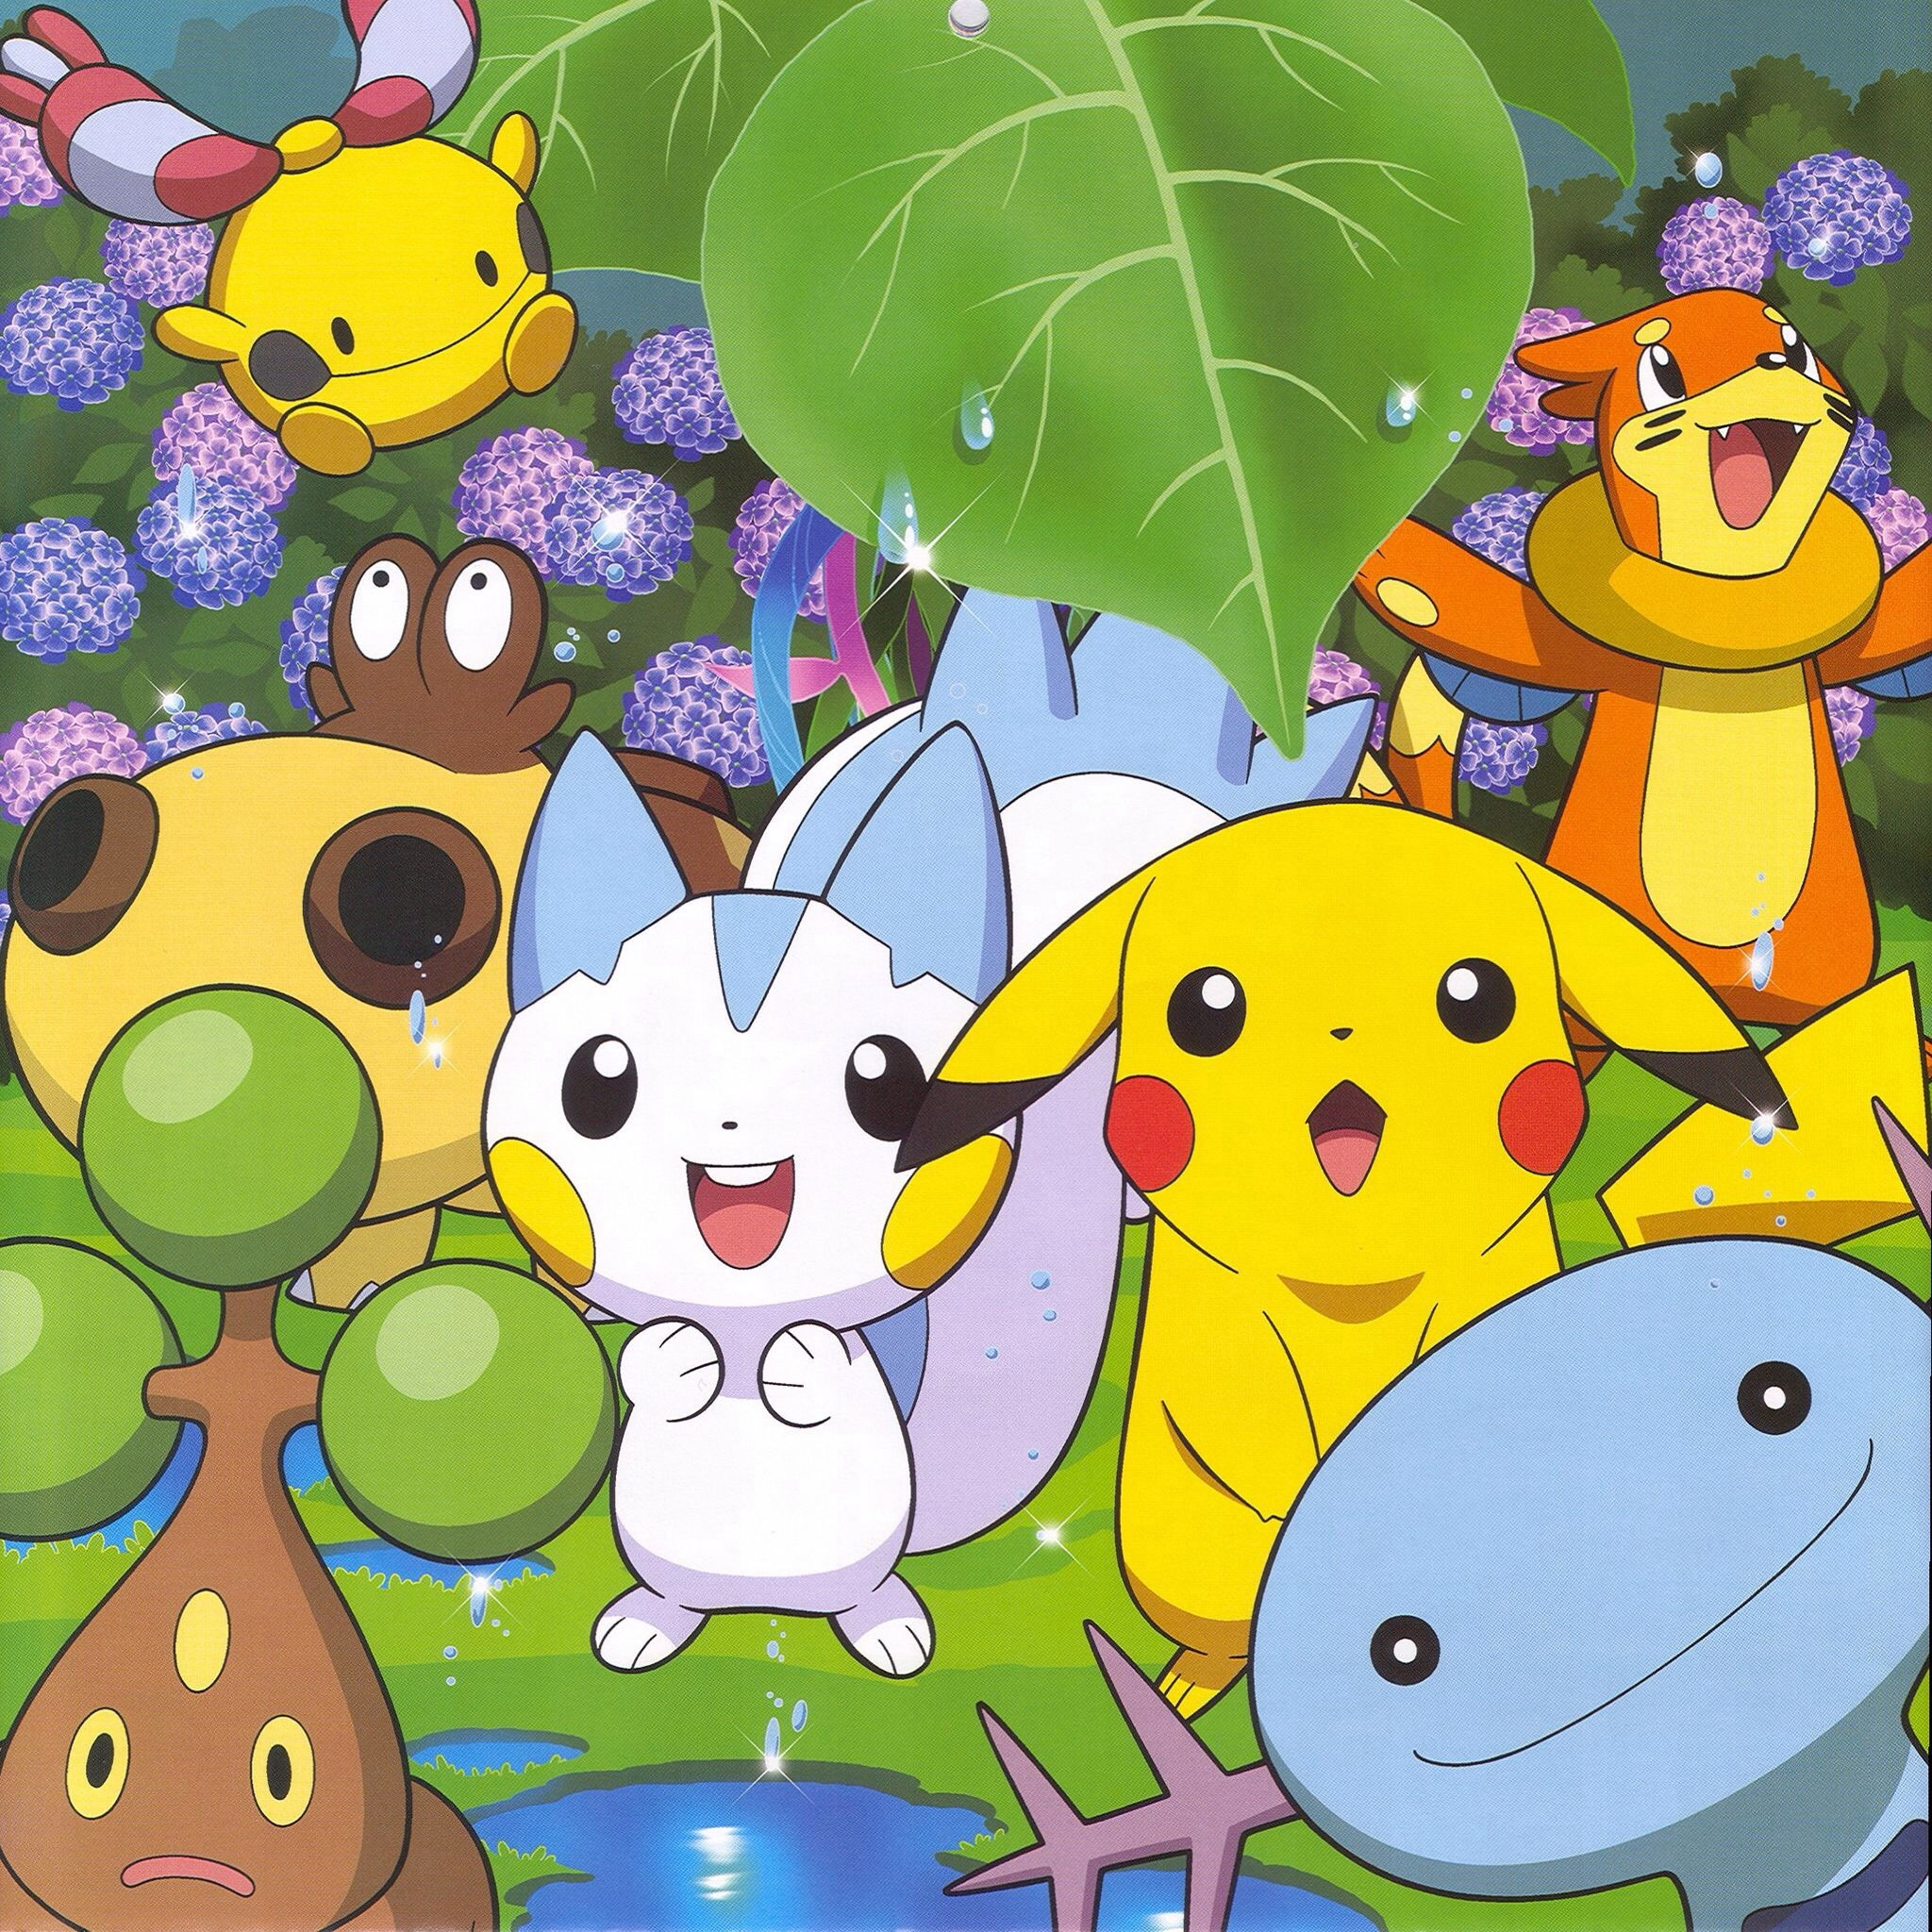 2048x2048 pokémon images pikachu and friends playing in the Spring HD wallpaper and  background photos